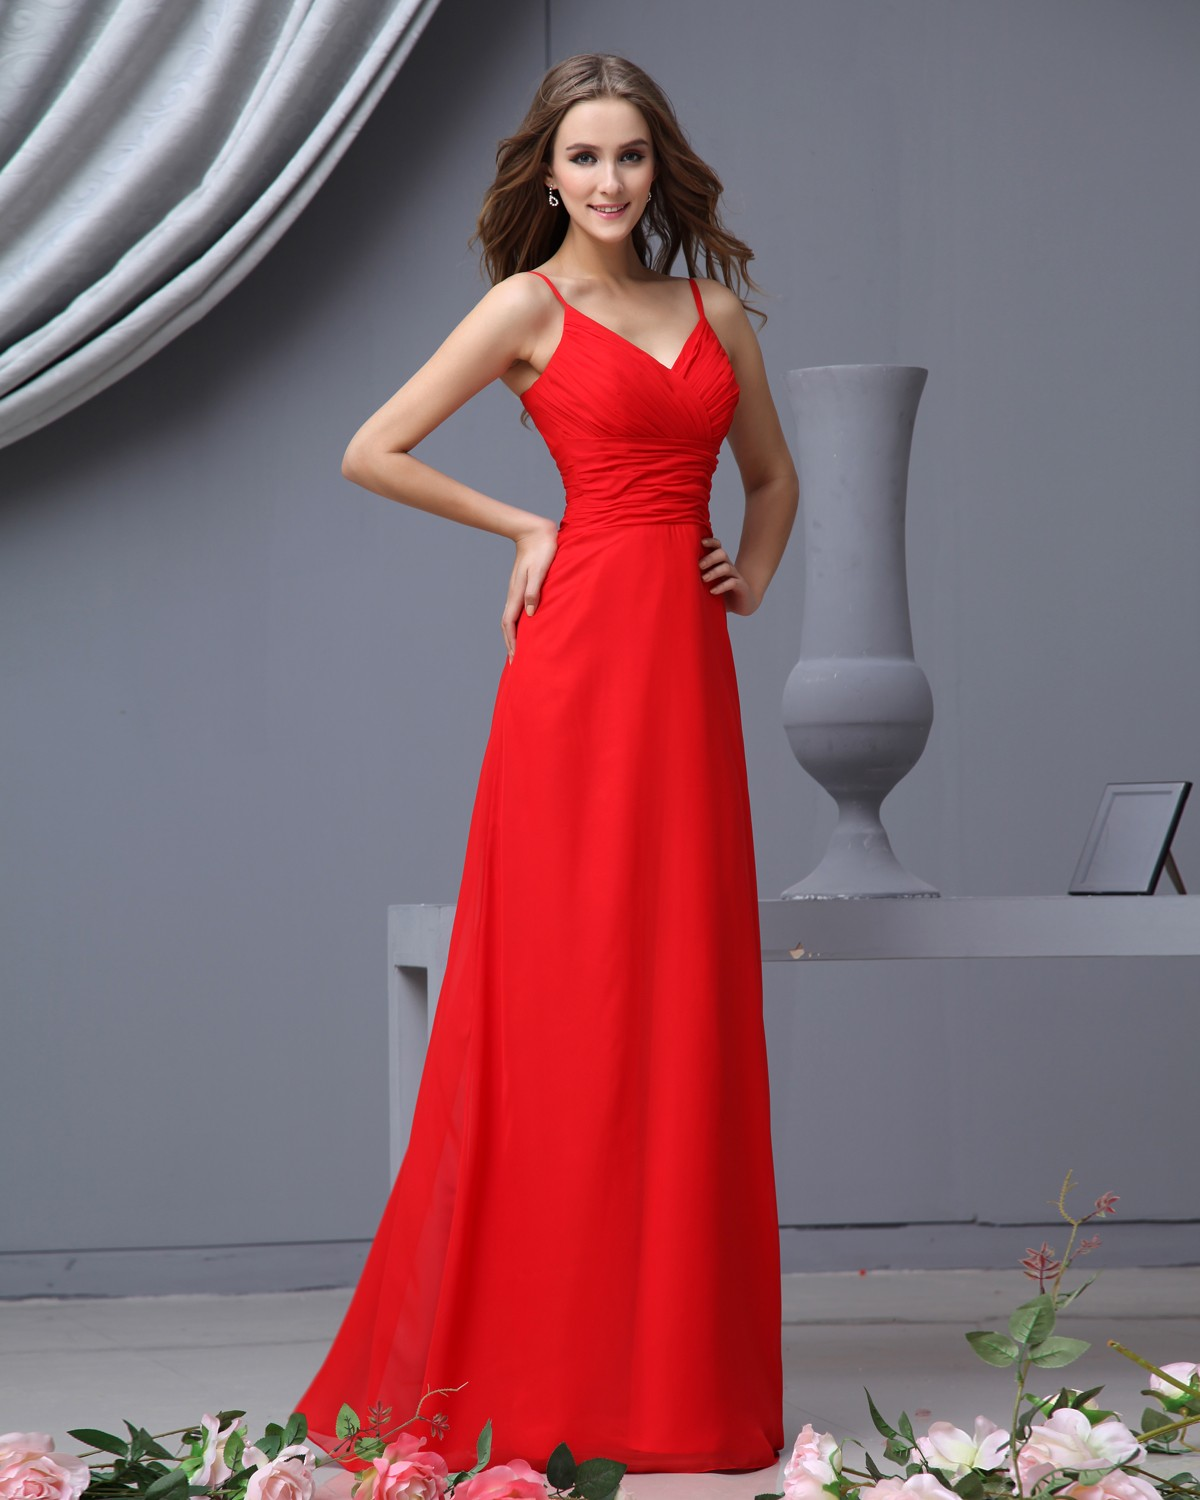 Bridesmaid Red Dress